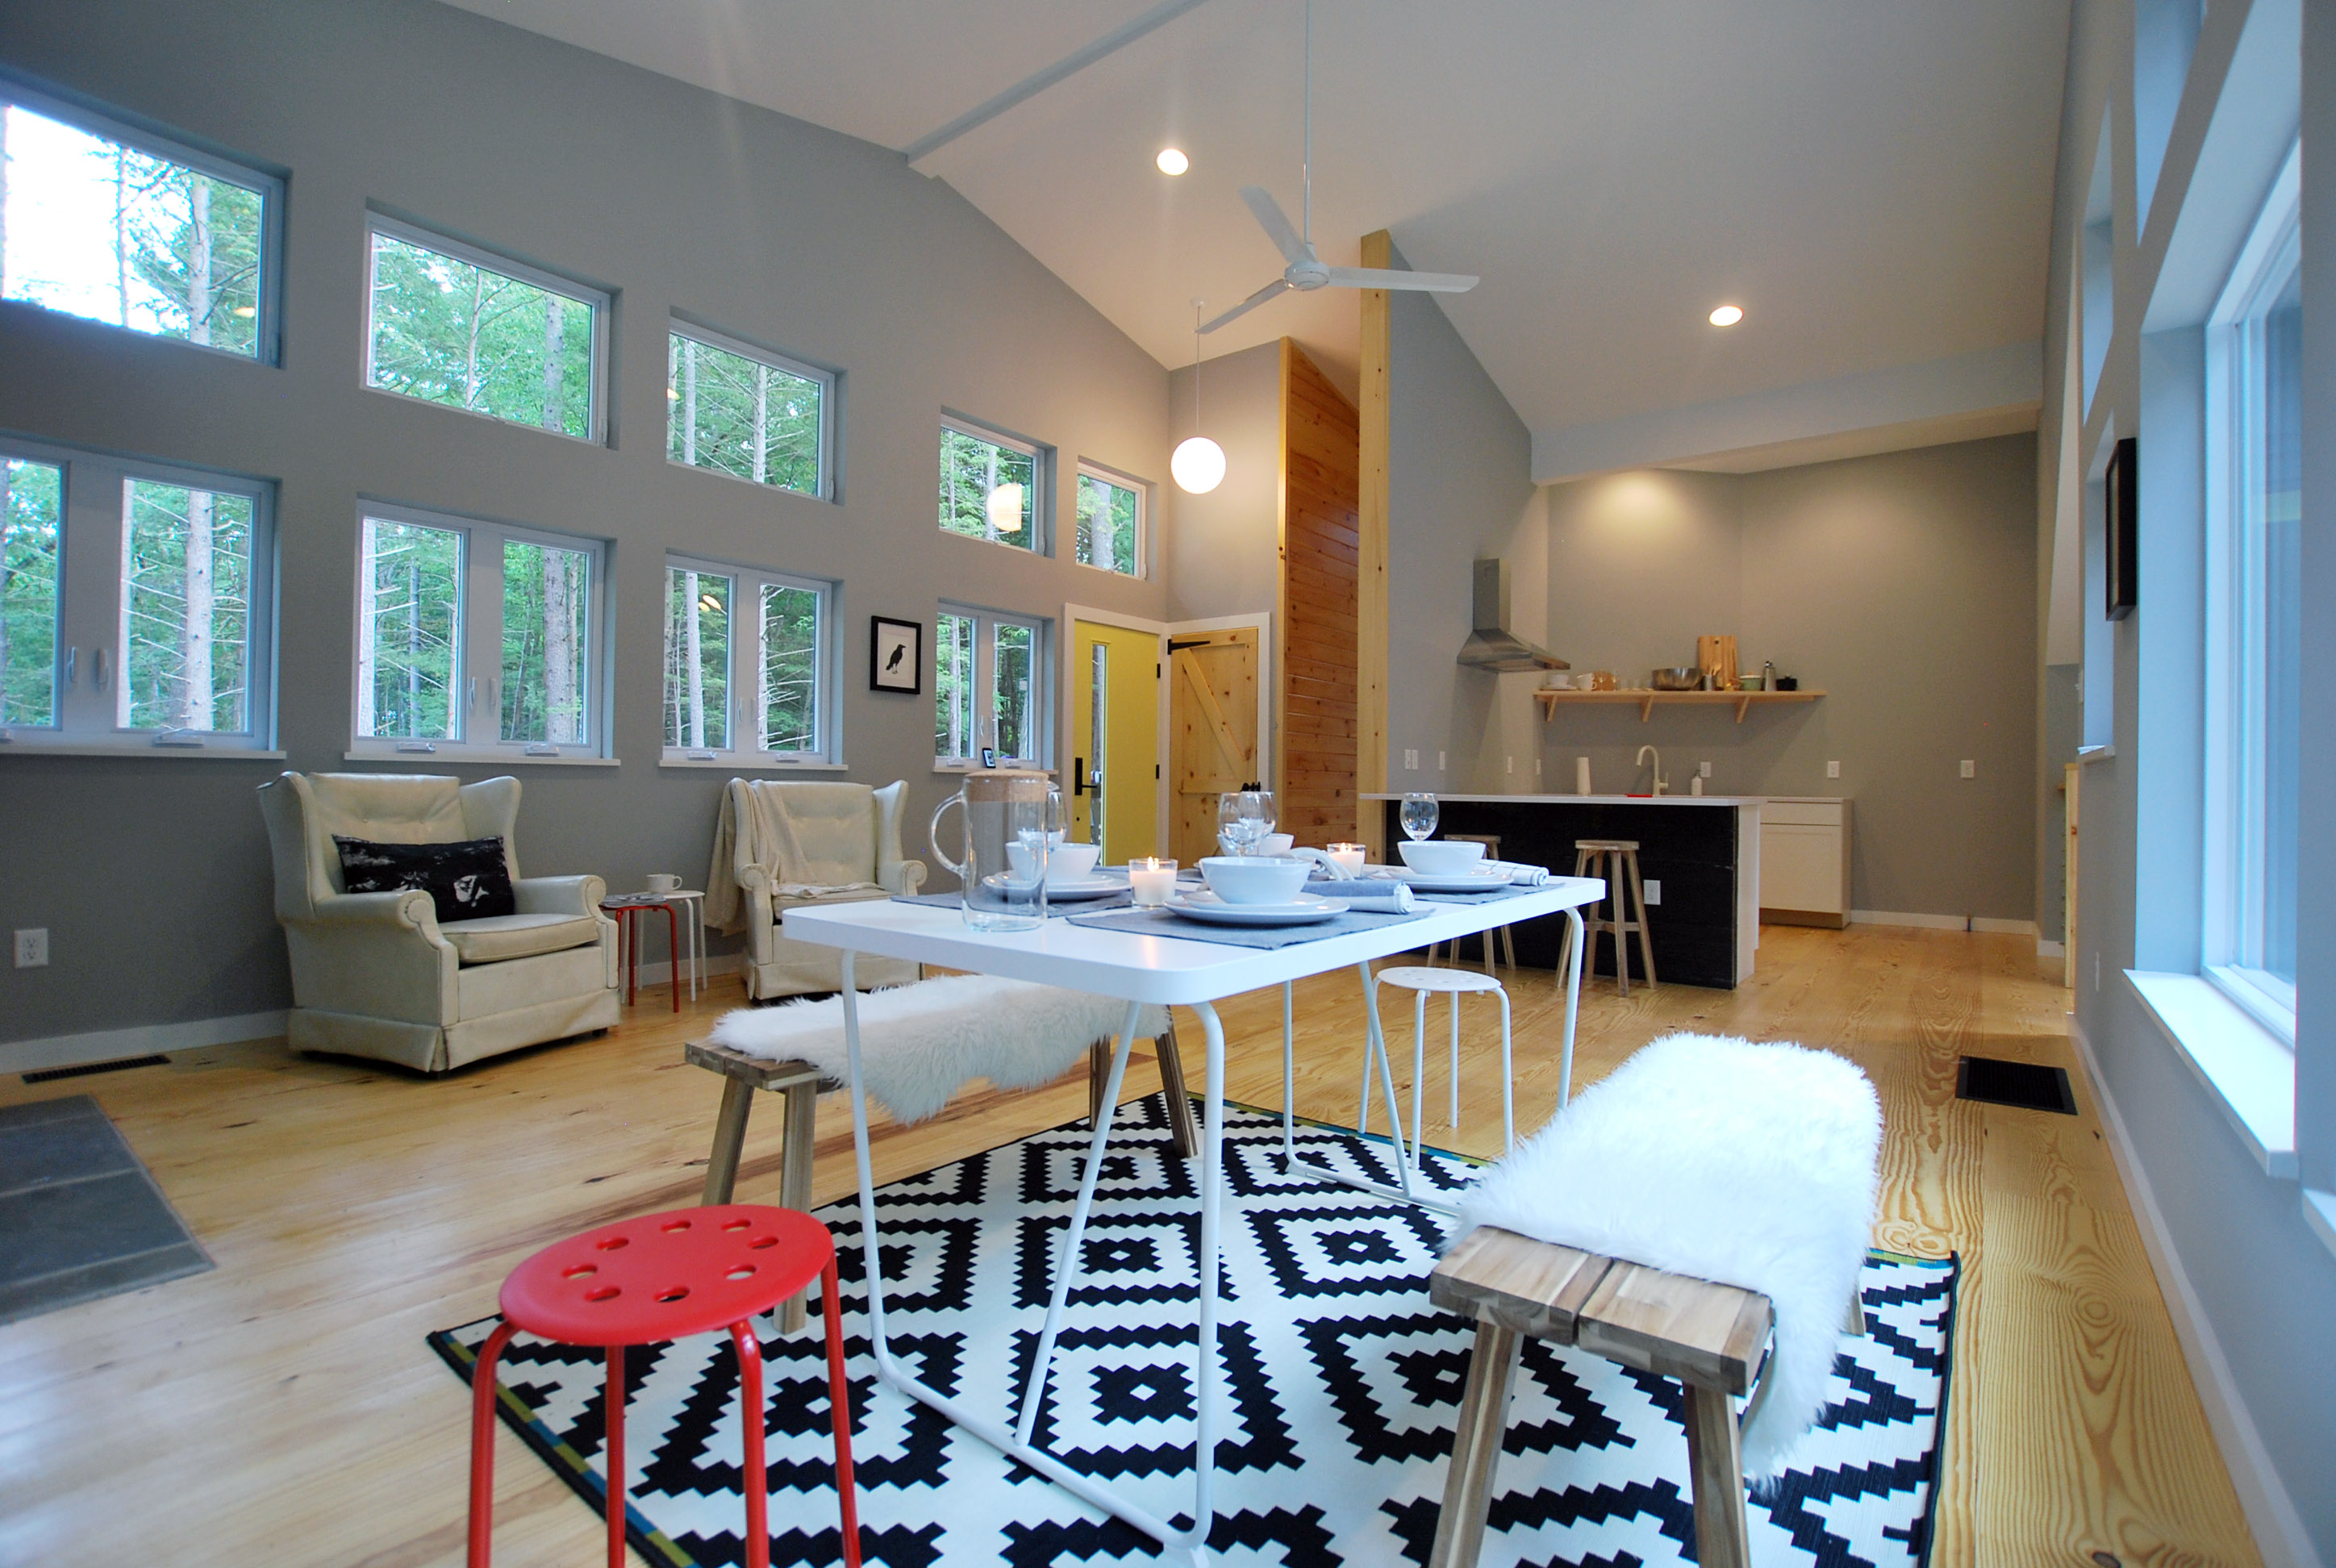 Open Floor Plans, Large Windows, Living Room Fire Place, Soaring Ceilings,  And Clean Lines Are All Mid Mod Aspects ...